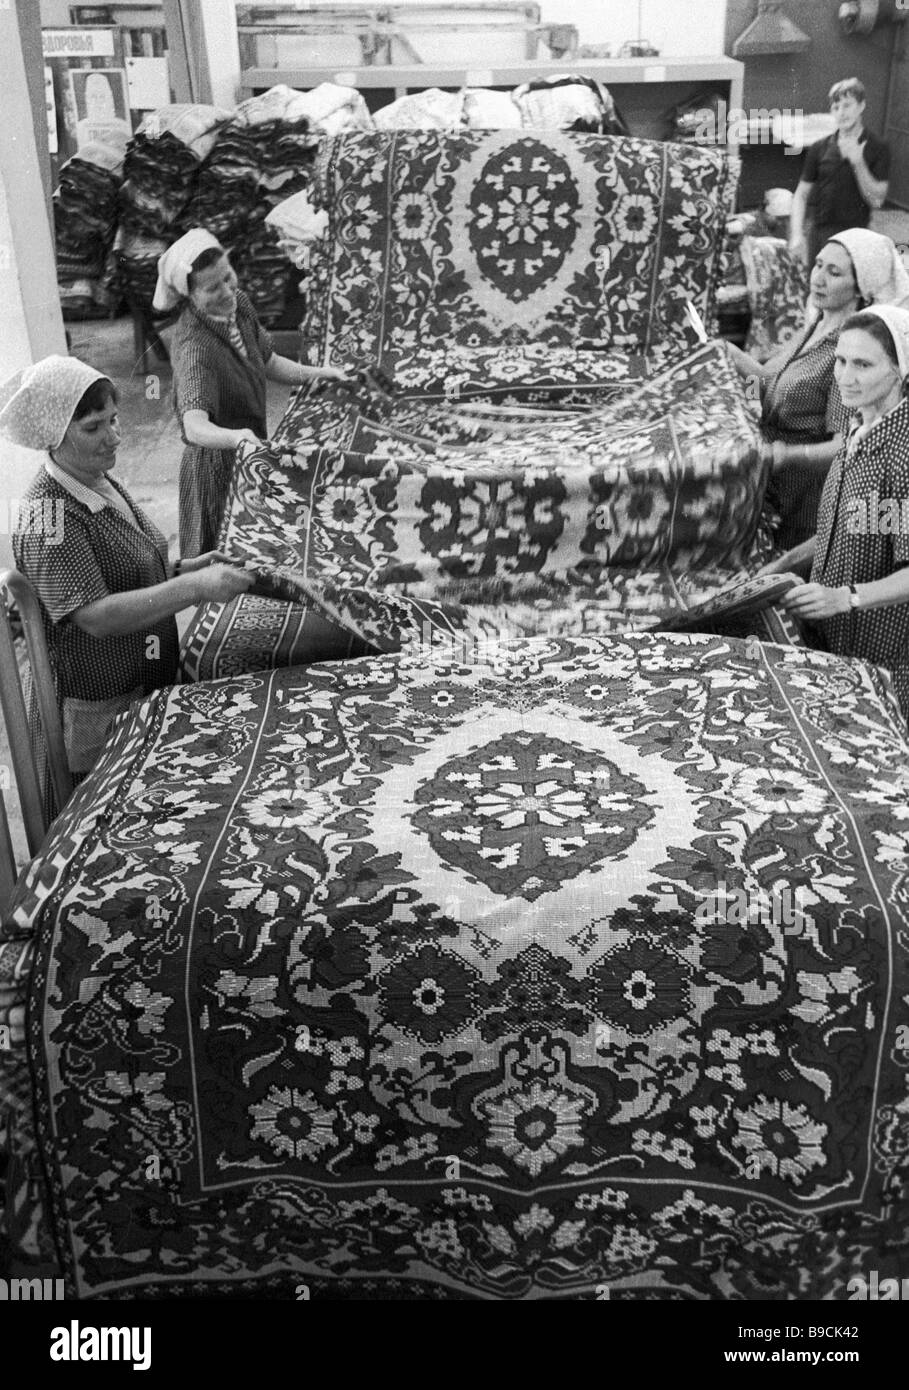 Textile mill workers demonstrate their carpetry - Stock Image